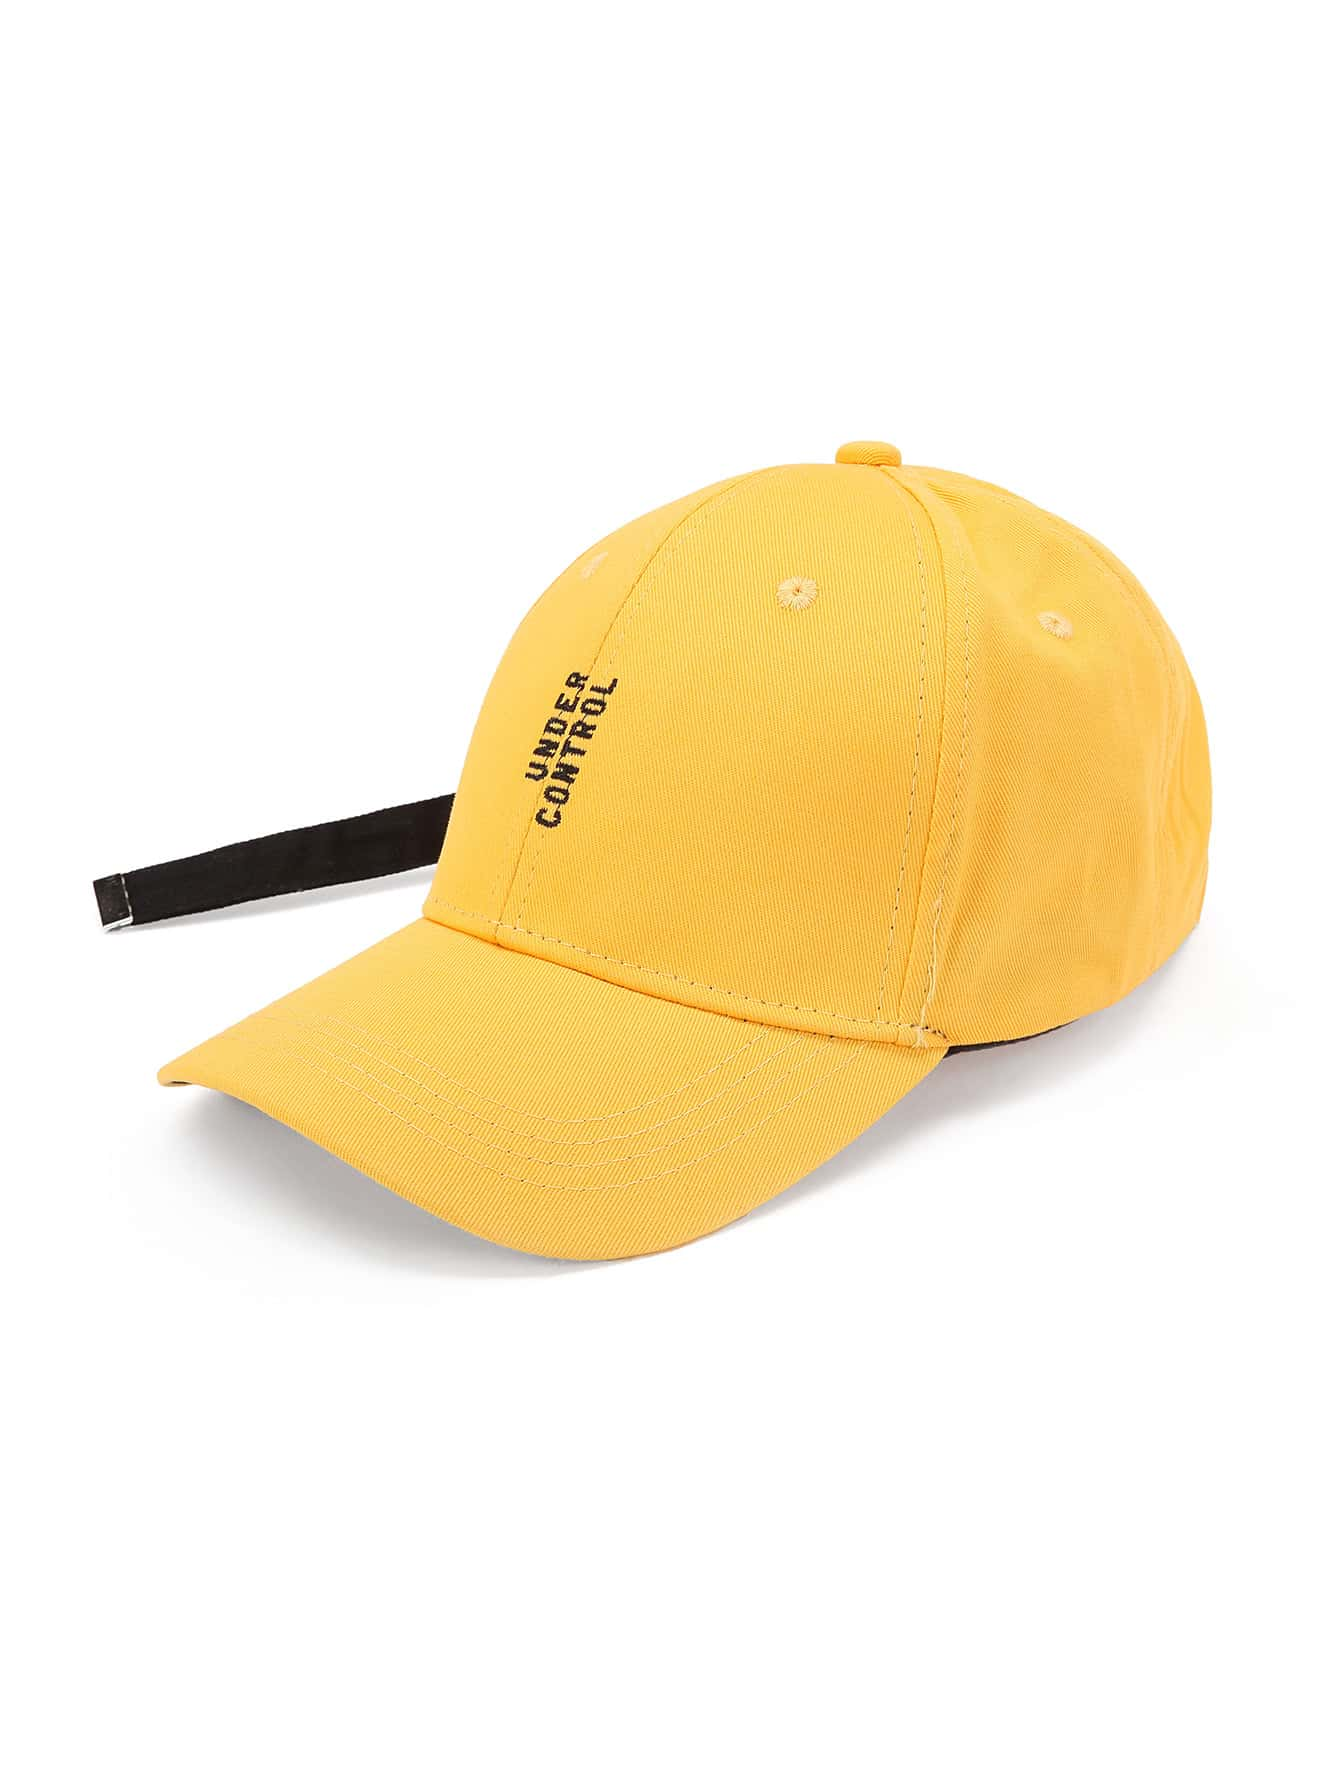 Slogan Embroidery Baseball Cap With Long Strap hat170725303